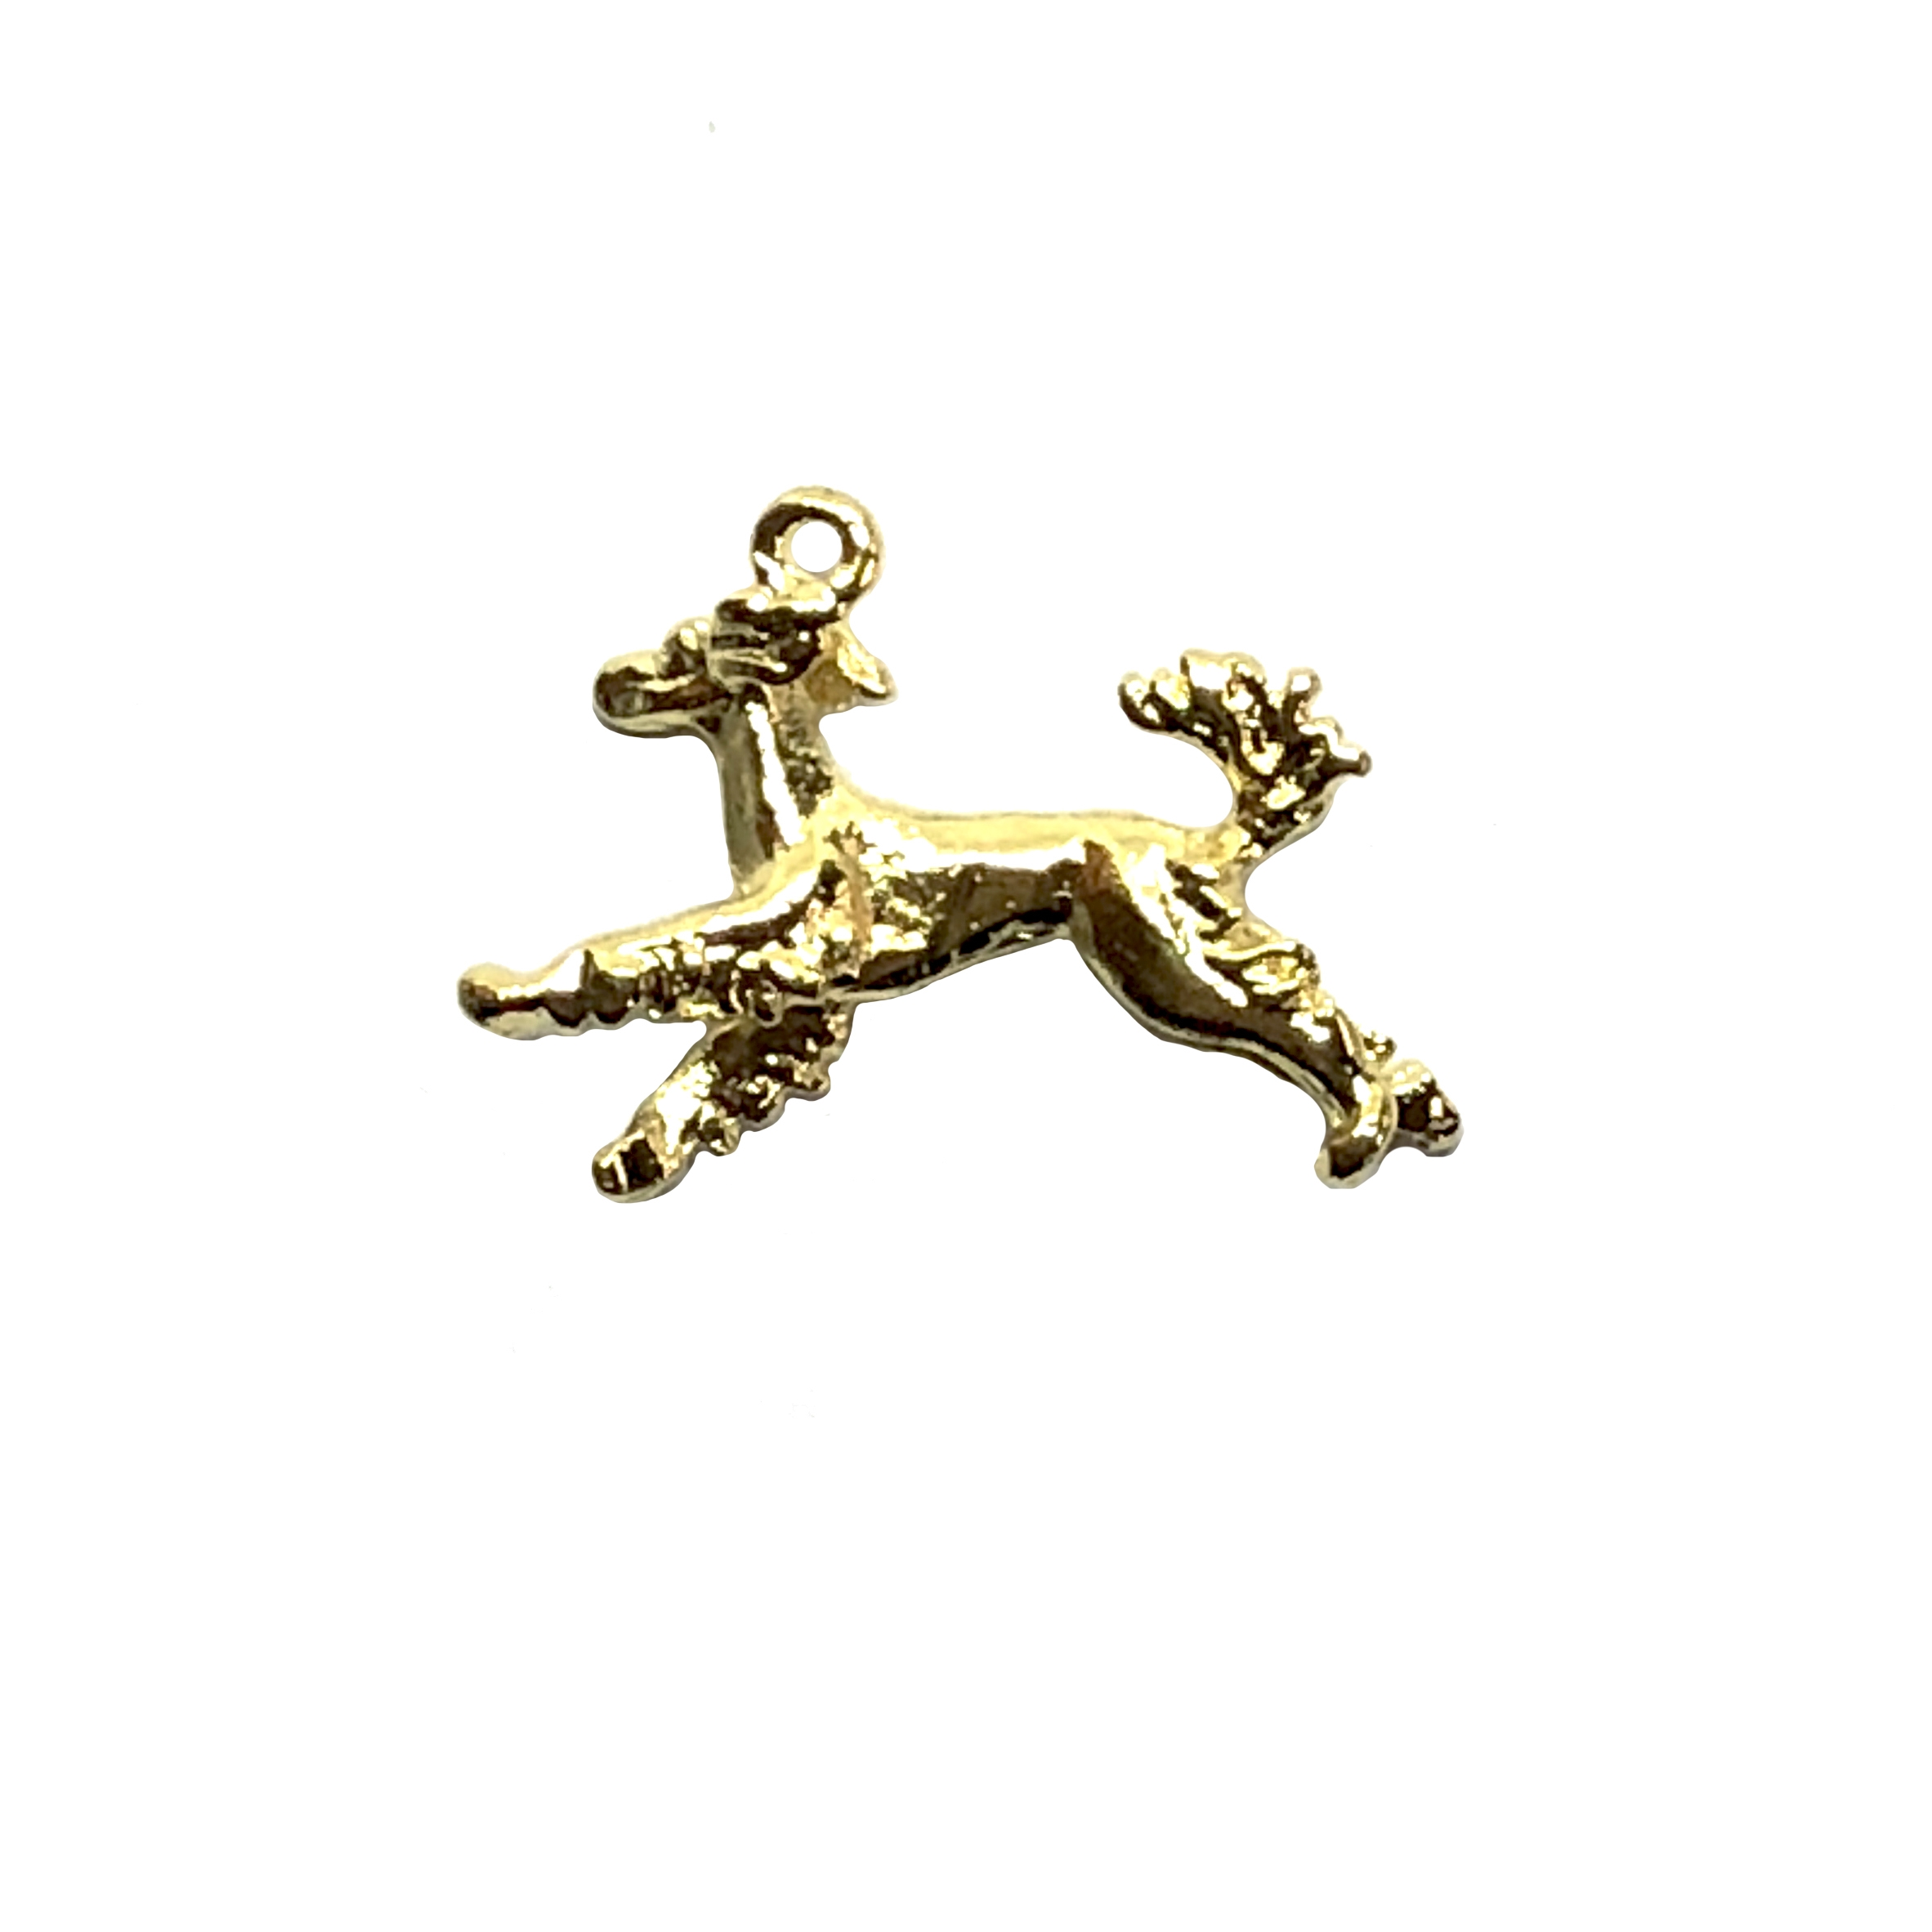 Irish setter charm, 22K gold finish pewter, B'sue by 1928, jewelry charm, dog, dog charm, charm, Irish setter, gold, lead free pewter, gold finish, US made, designer jewelry, vintage supplies, B'sue Boutiques, 24x20mm, 08530